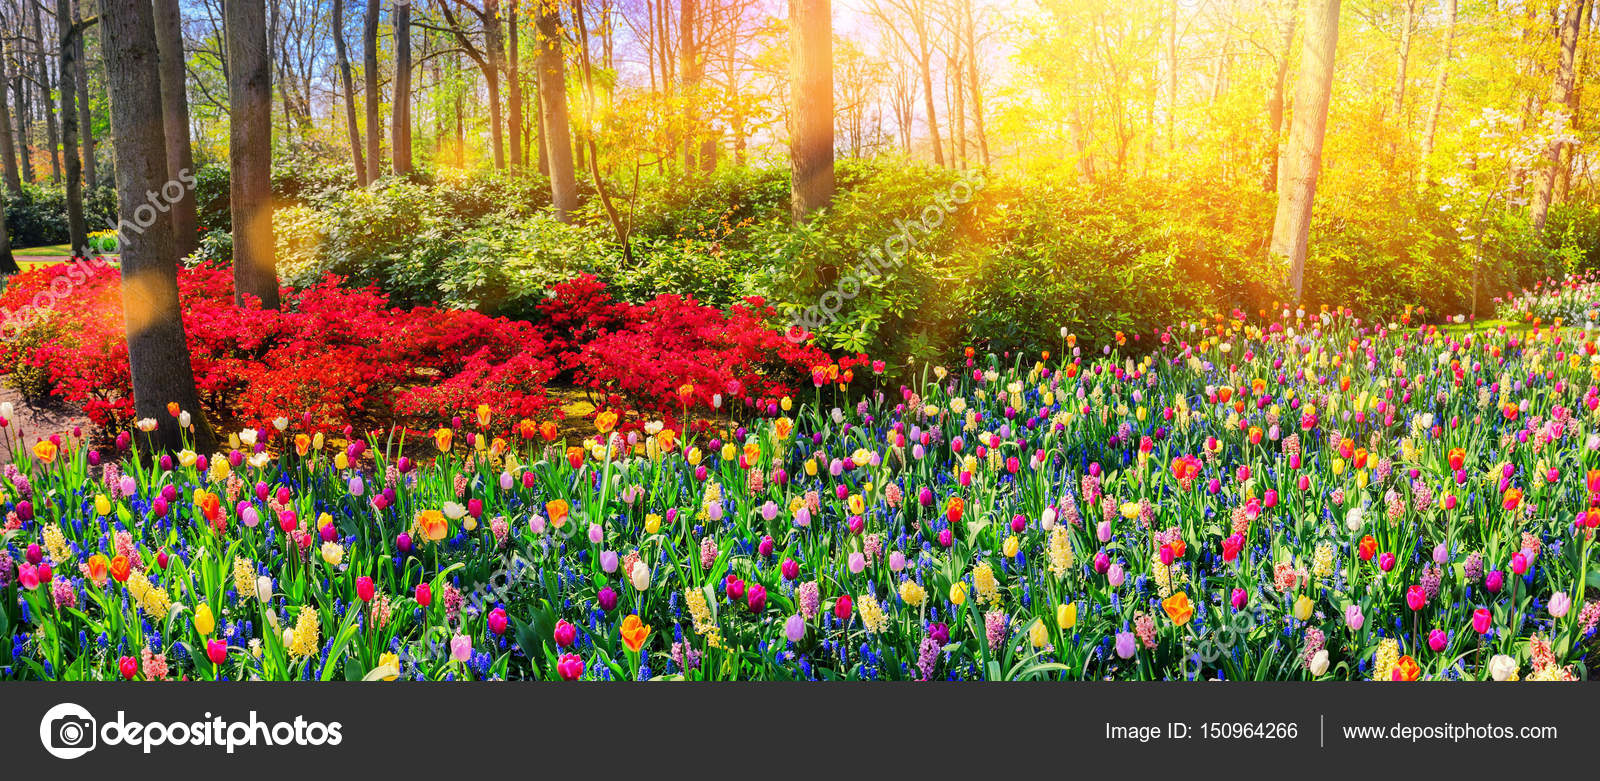 Landscape with beautiful flowers stock photo paulgrecaud 150964266 landscape with beautiful flowers stock photo izmirmasajfo